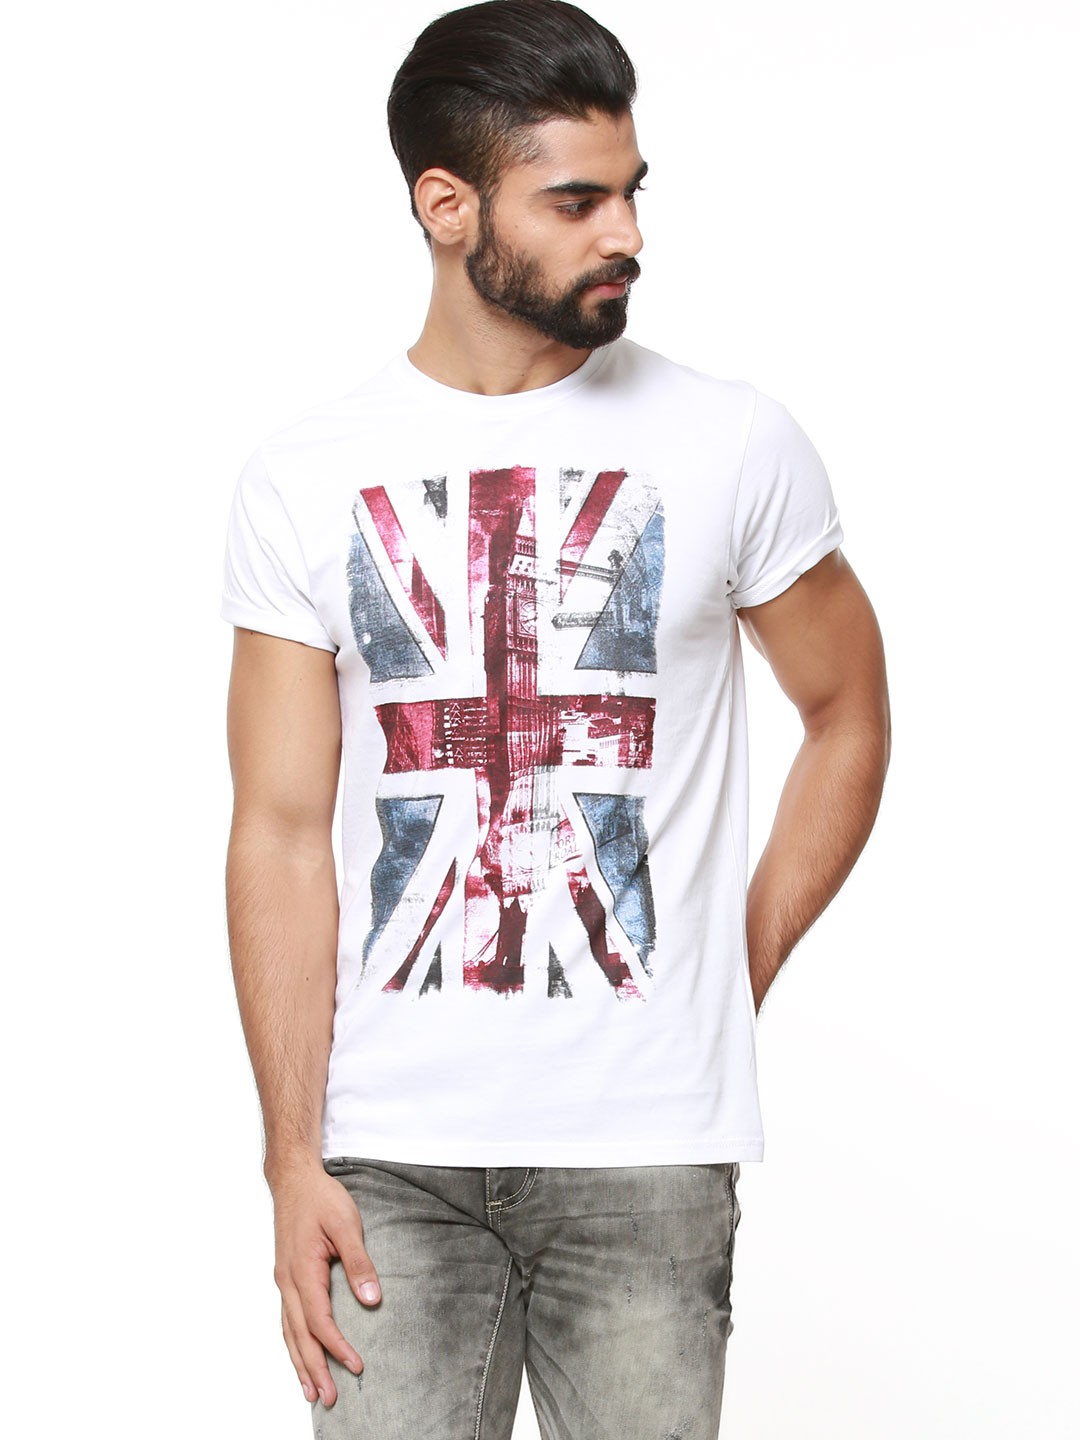 buy pepe jeans iconic flag print t shirt for men men 39 s. Black Bedroom Furniture Sets. Home Design Ideas